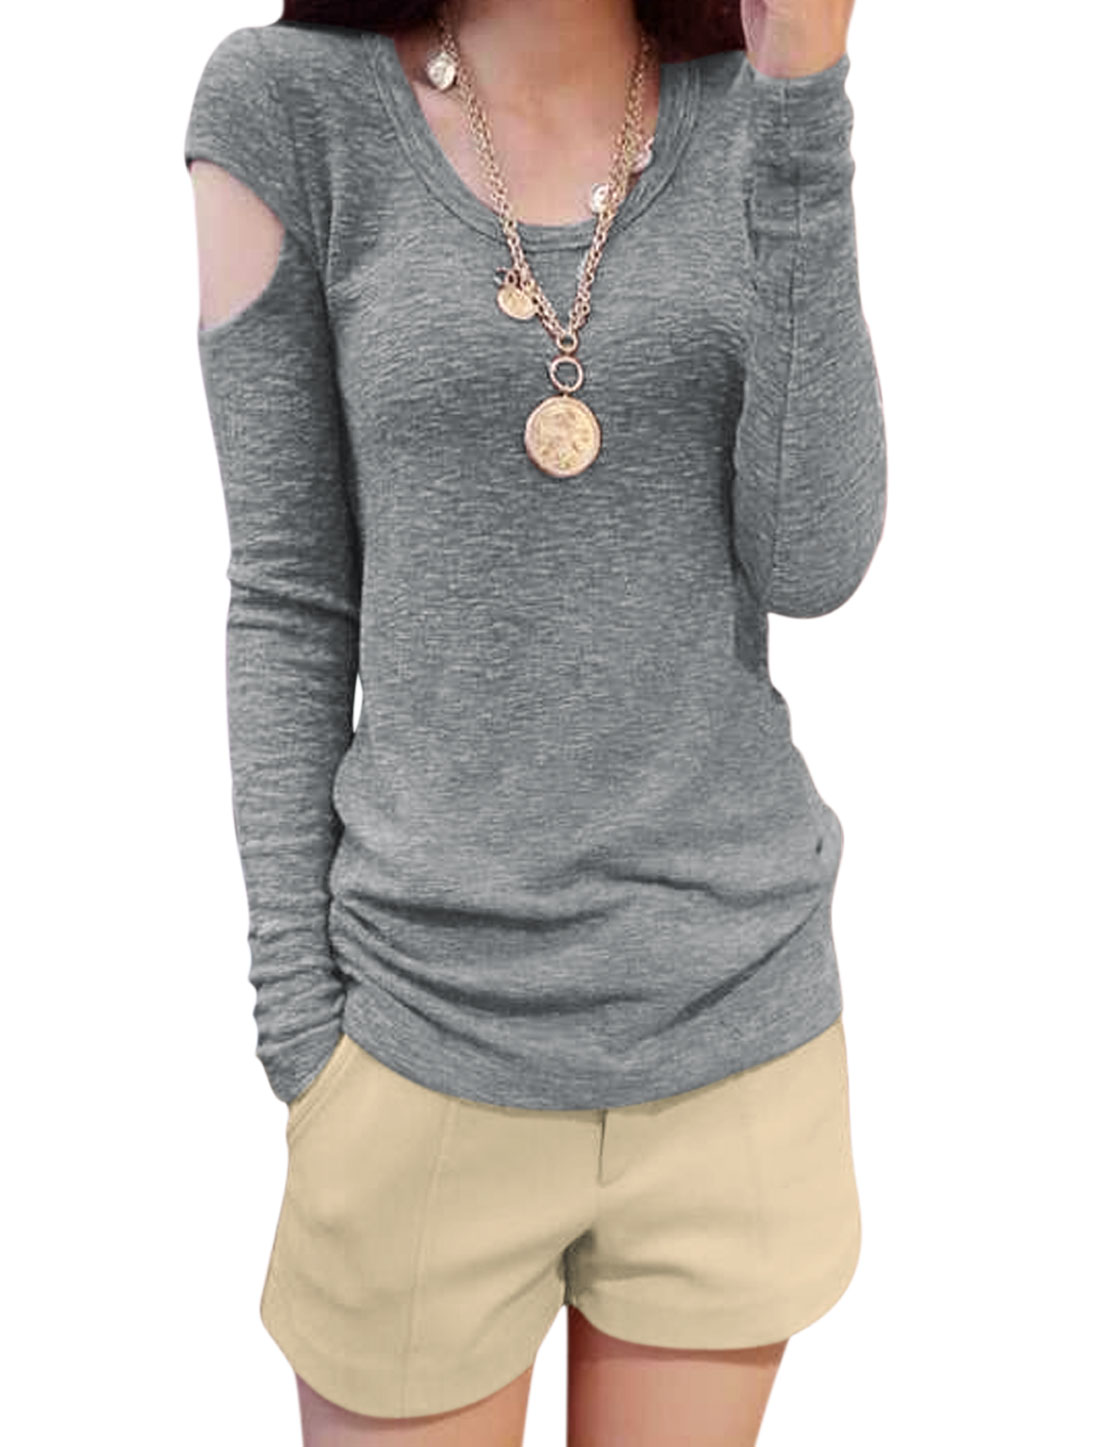 Women Round Neck Cut Out Heather Gray Sleeves Top w Natural Waist Khaki Shorts M